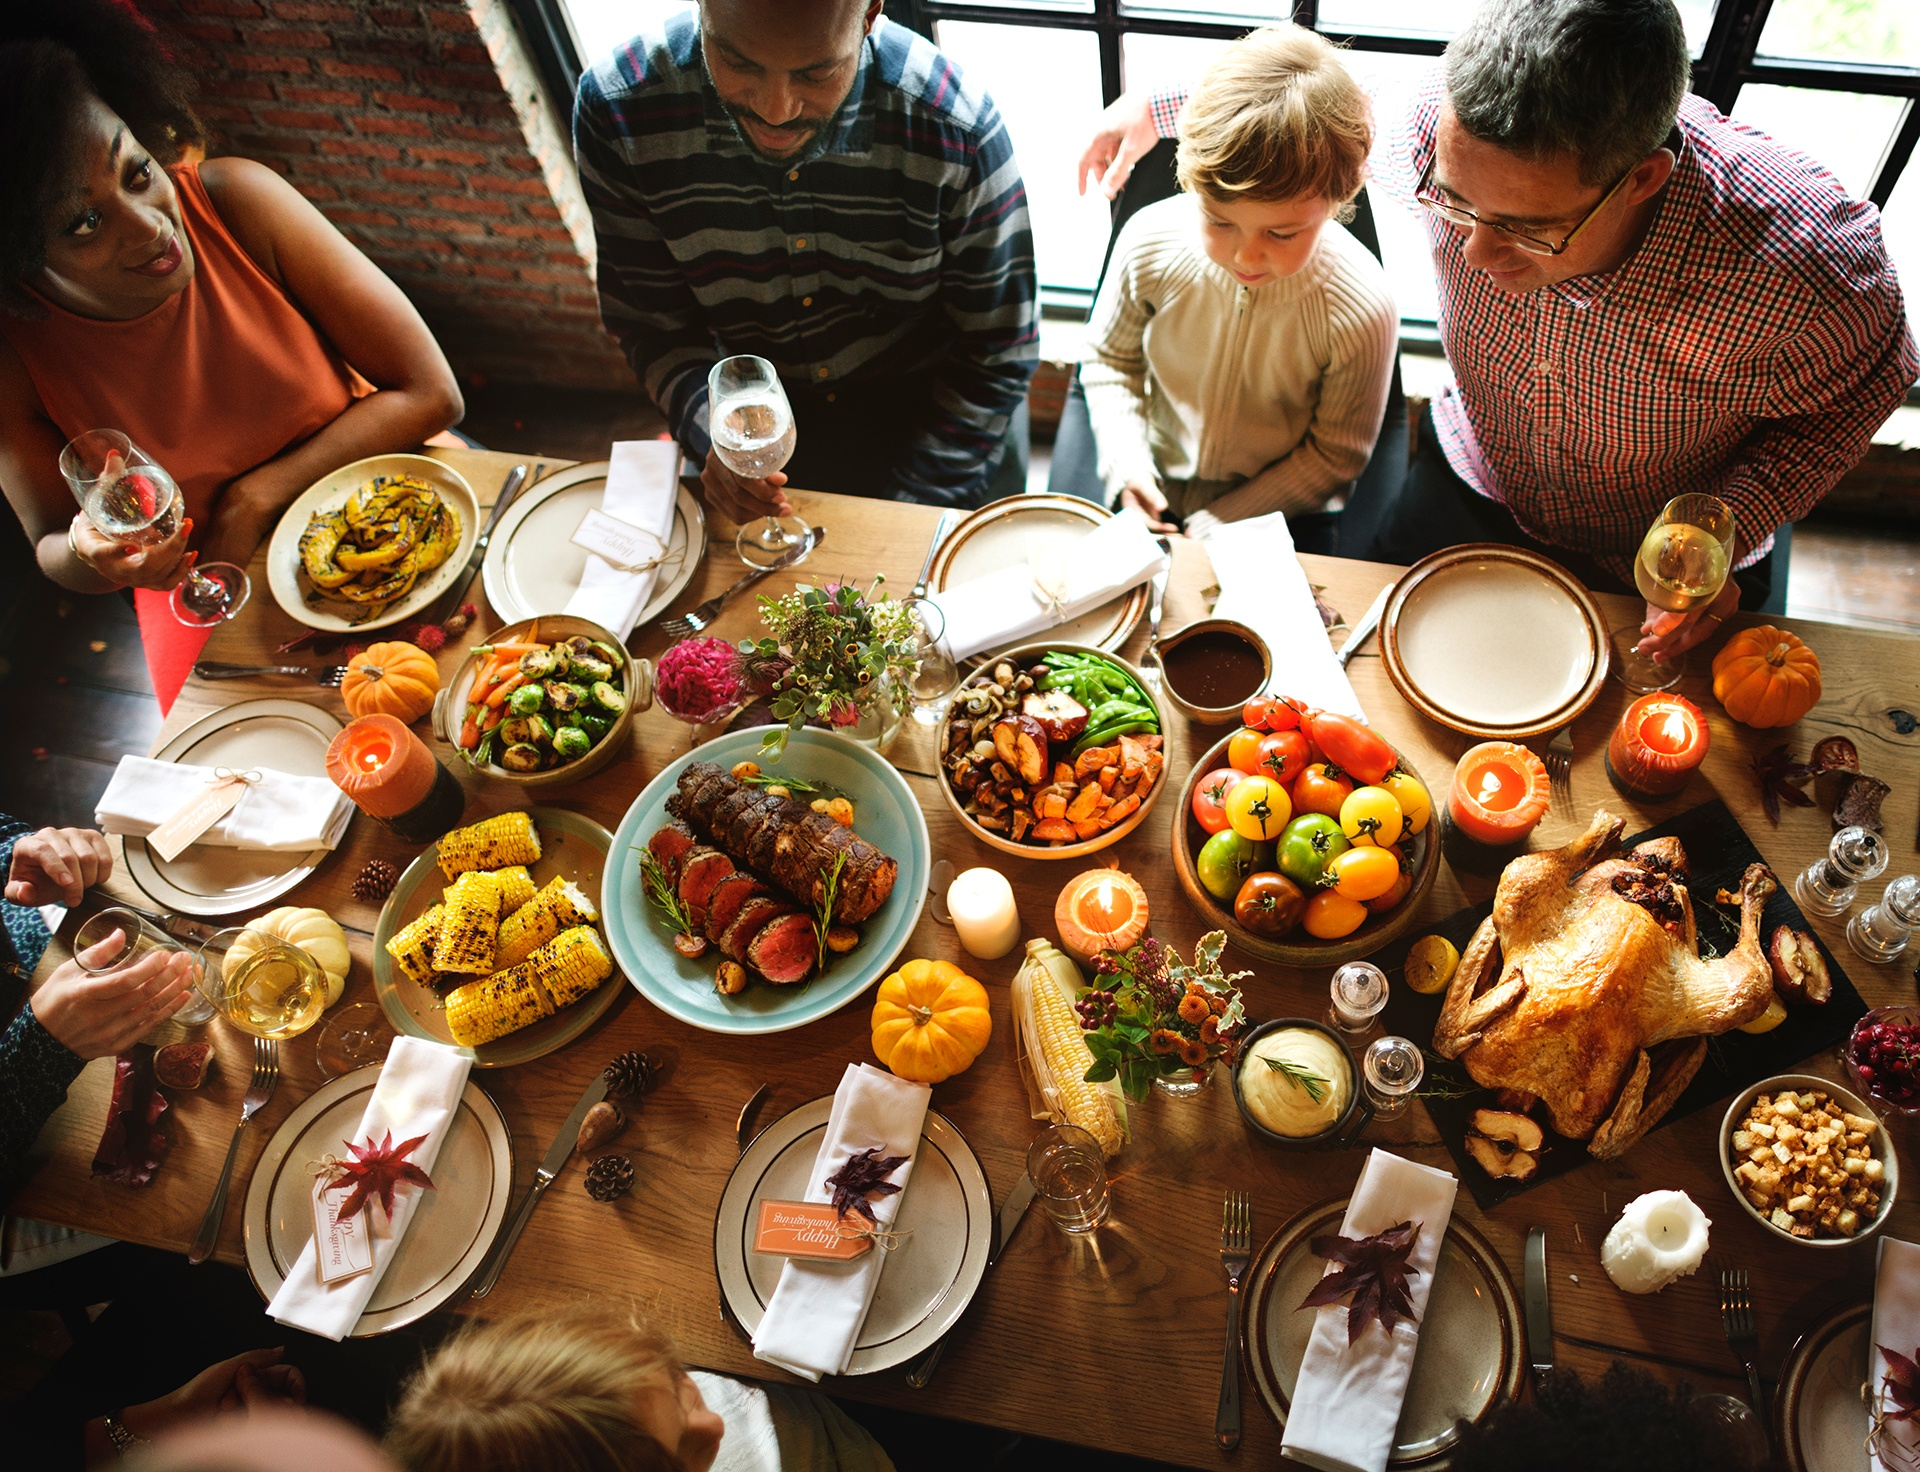 Hosting Thanksgiving – without blowing your budget